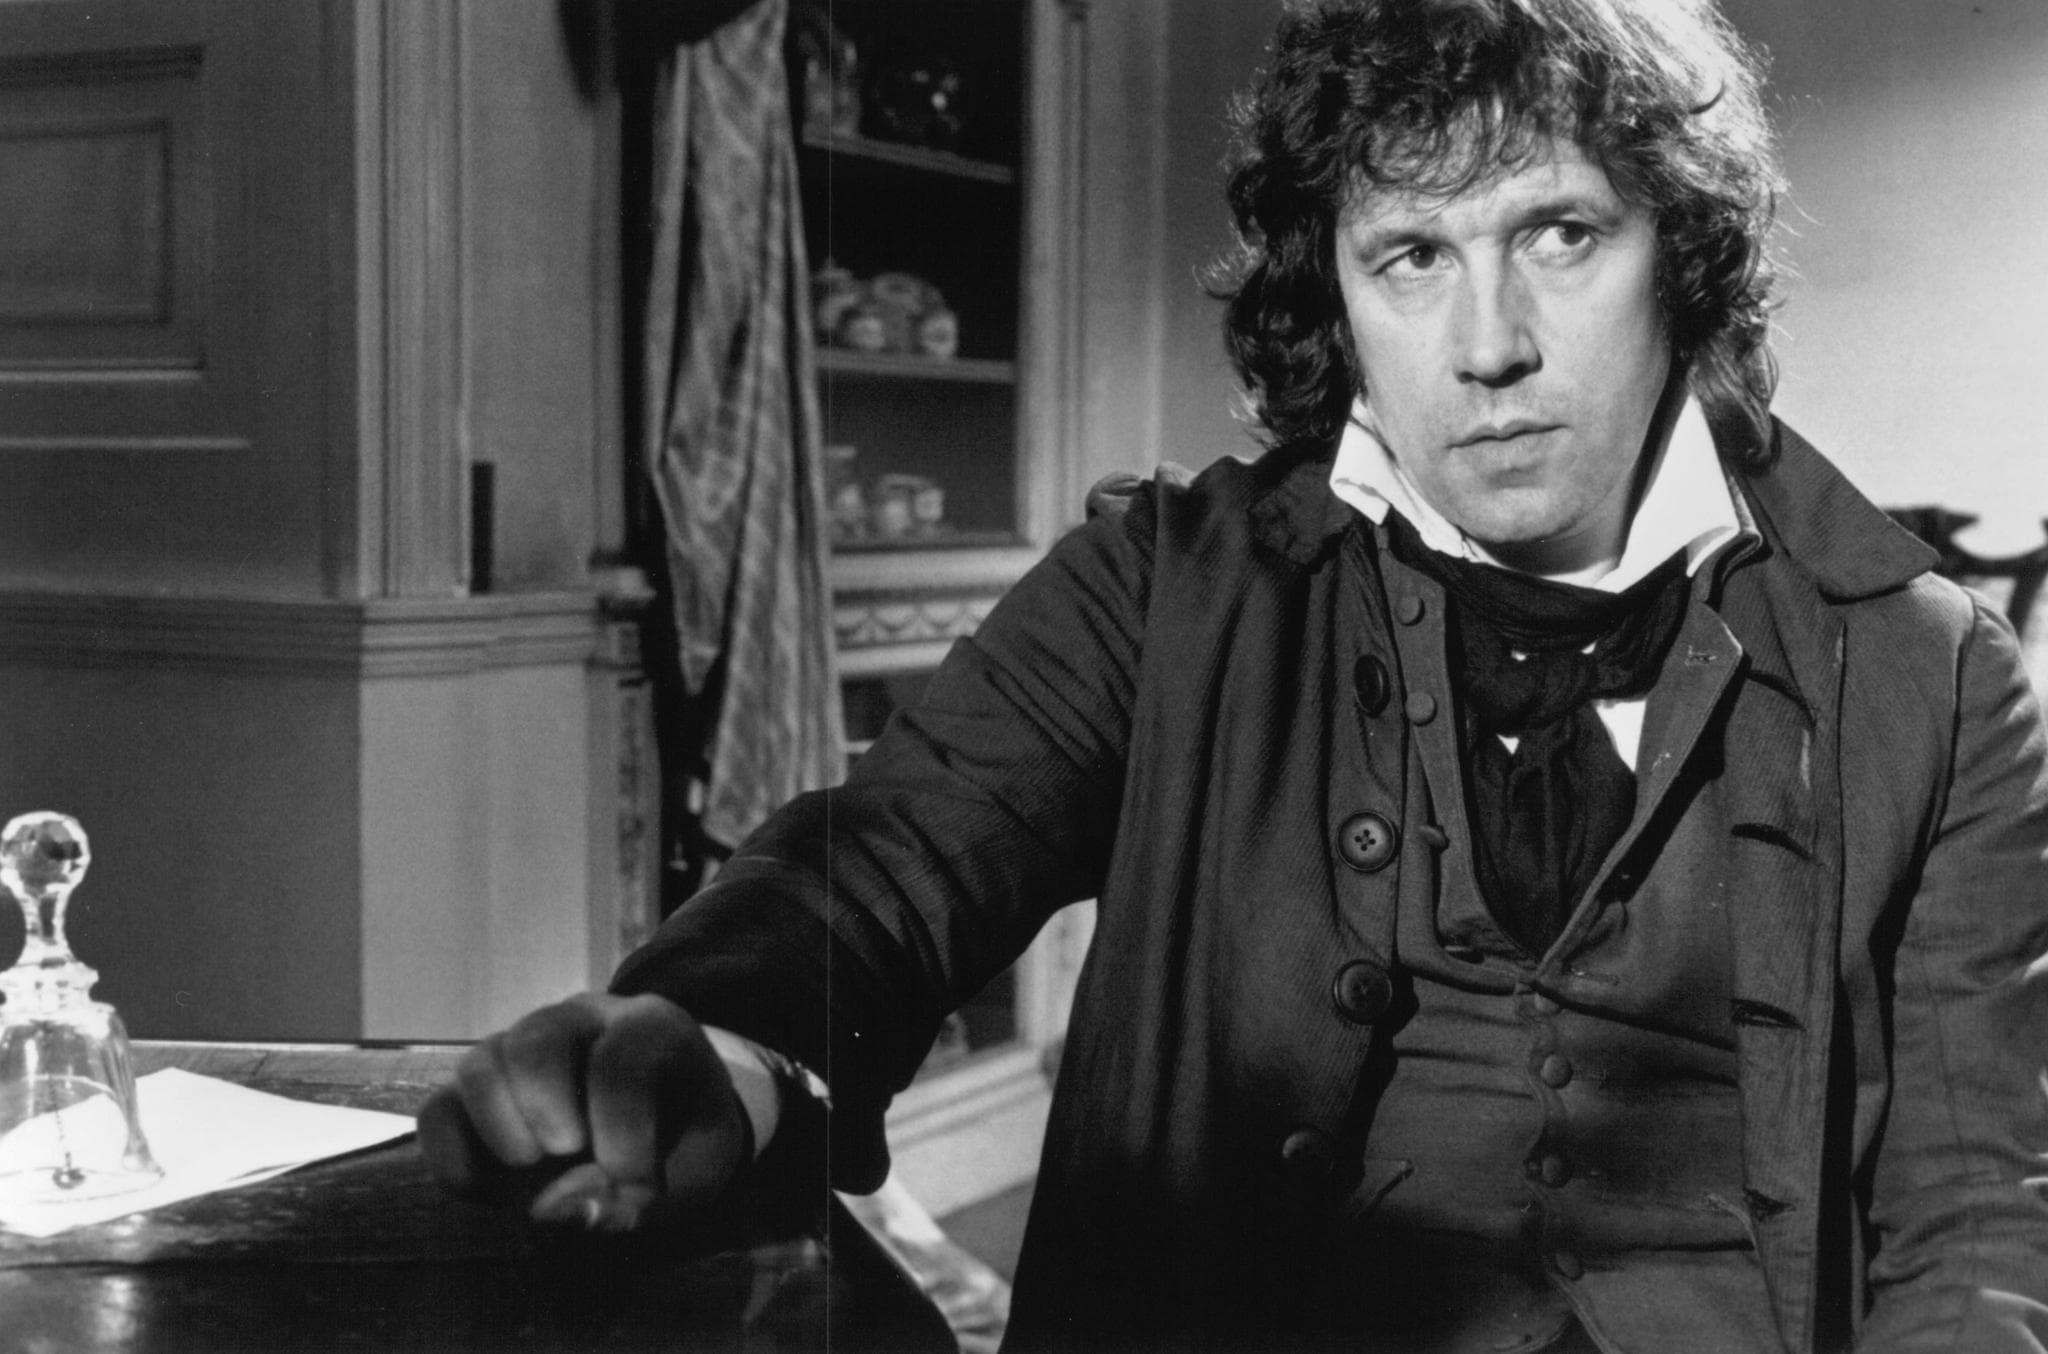 Stephen Rea HQ wallpapers